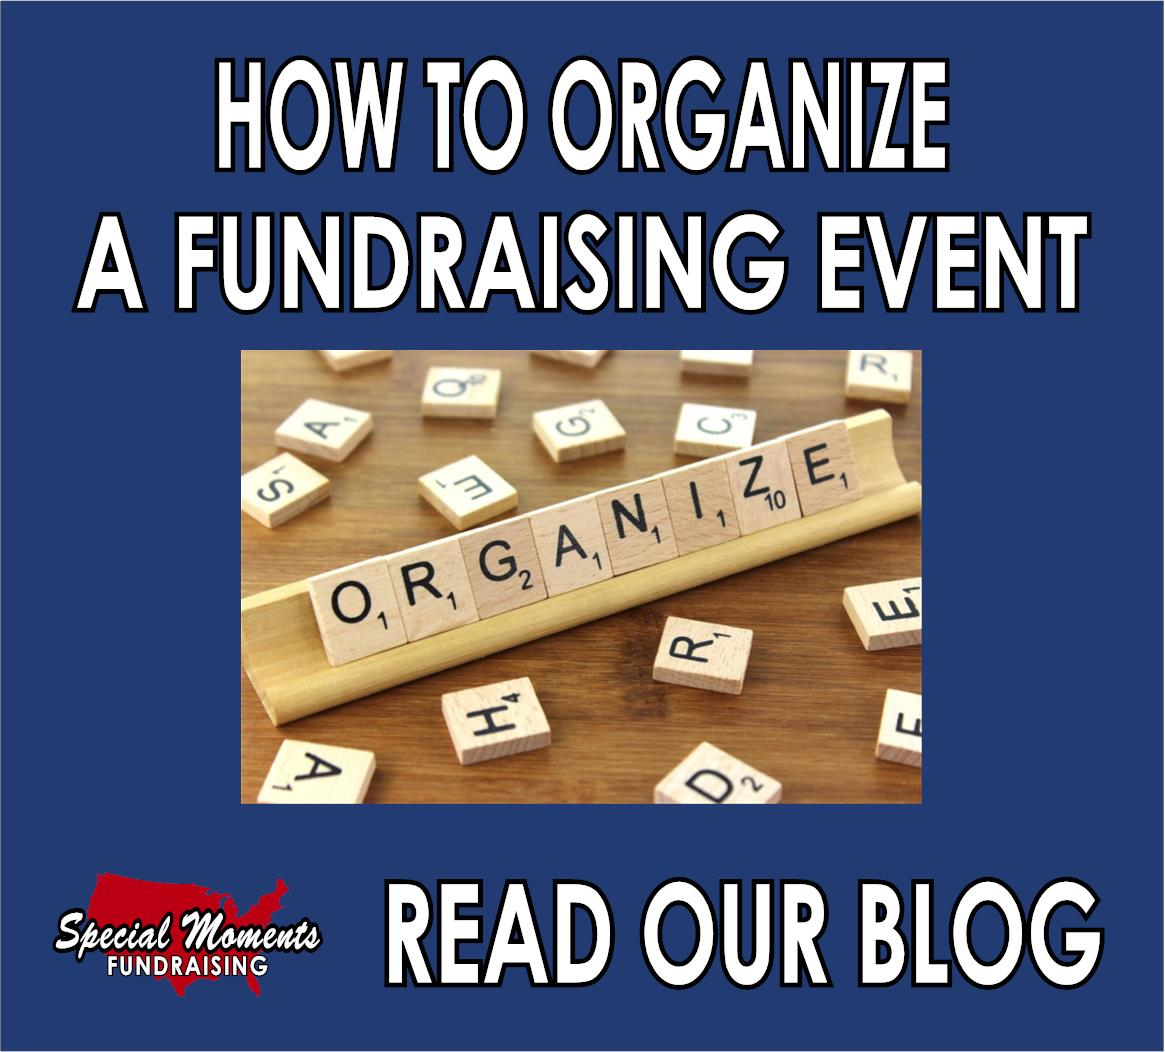 How To Organize A Fundraising Event